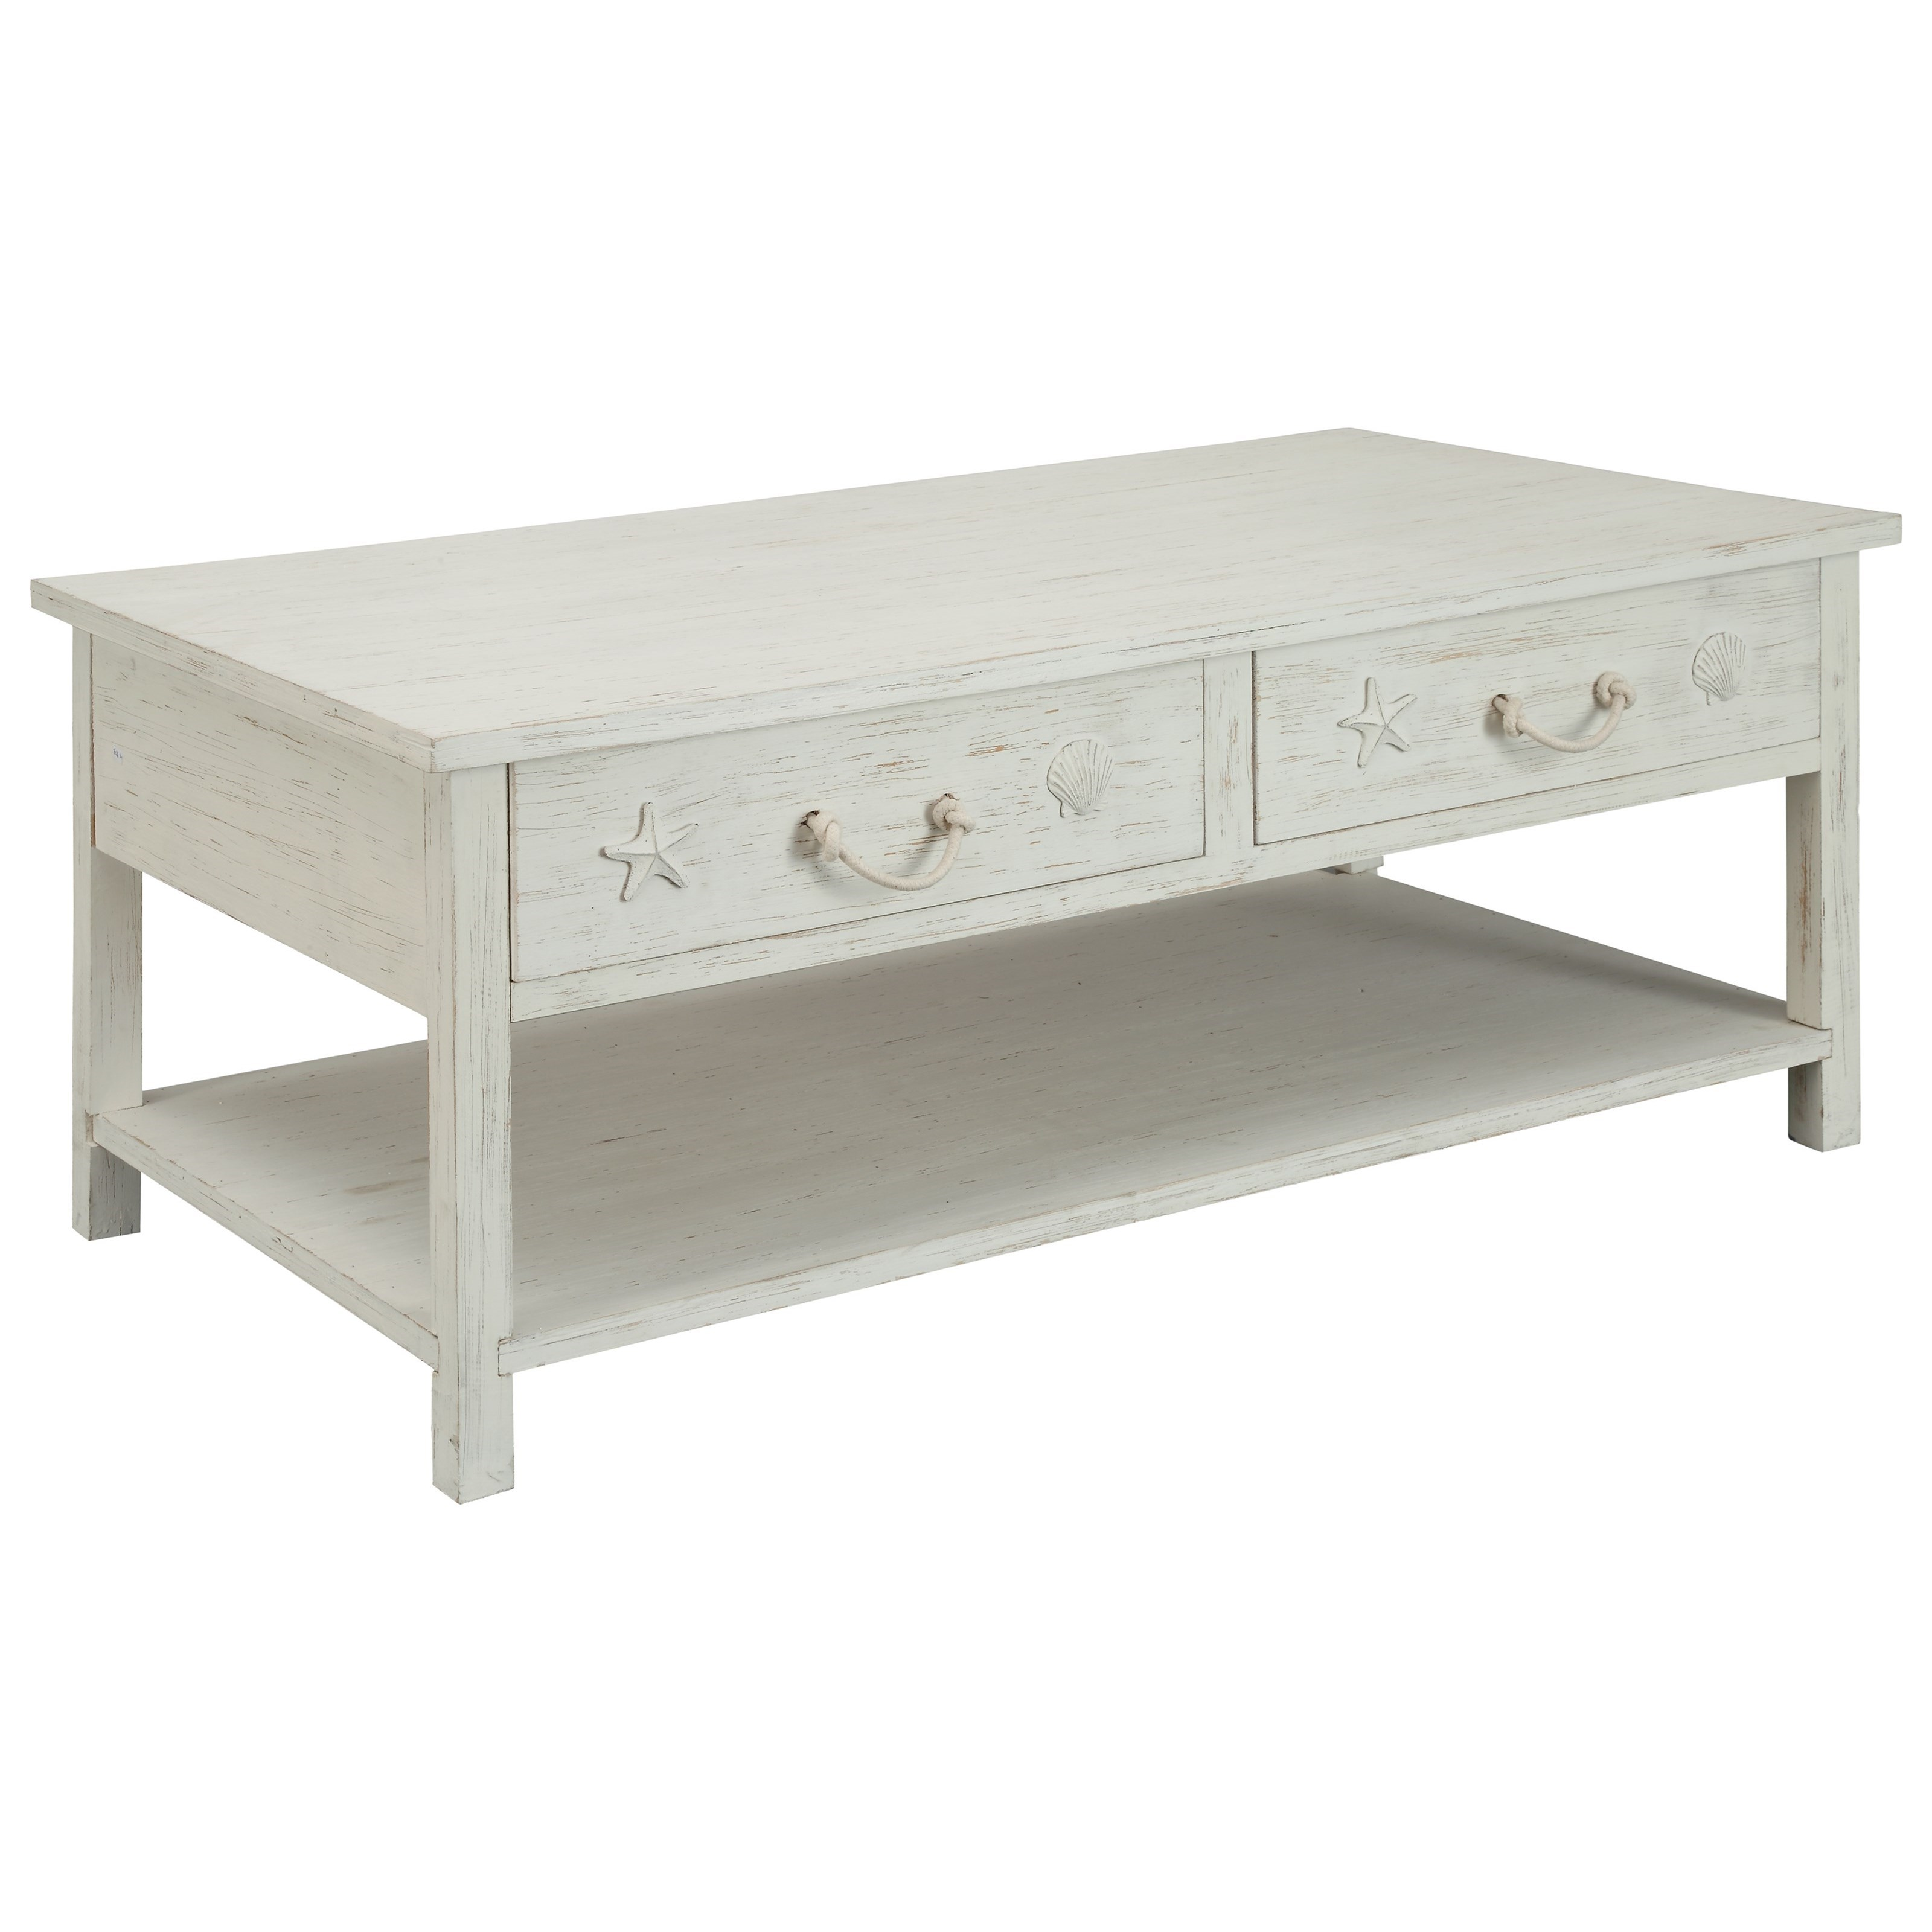 Sanibel Sanibel Four Drawer Cocktail Table by Coast to Coast Imports at Baer's Furniture